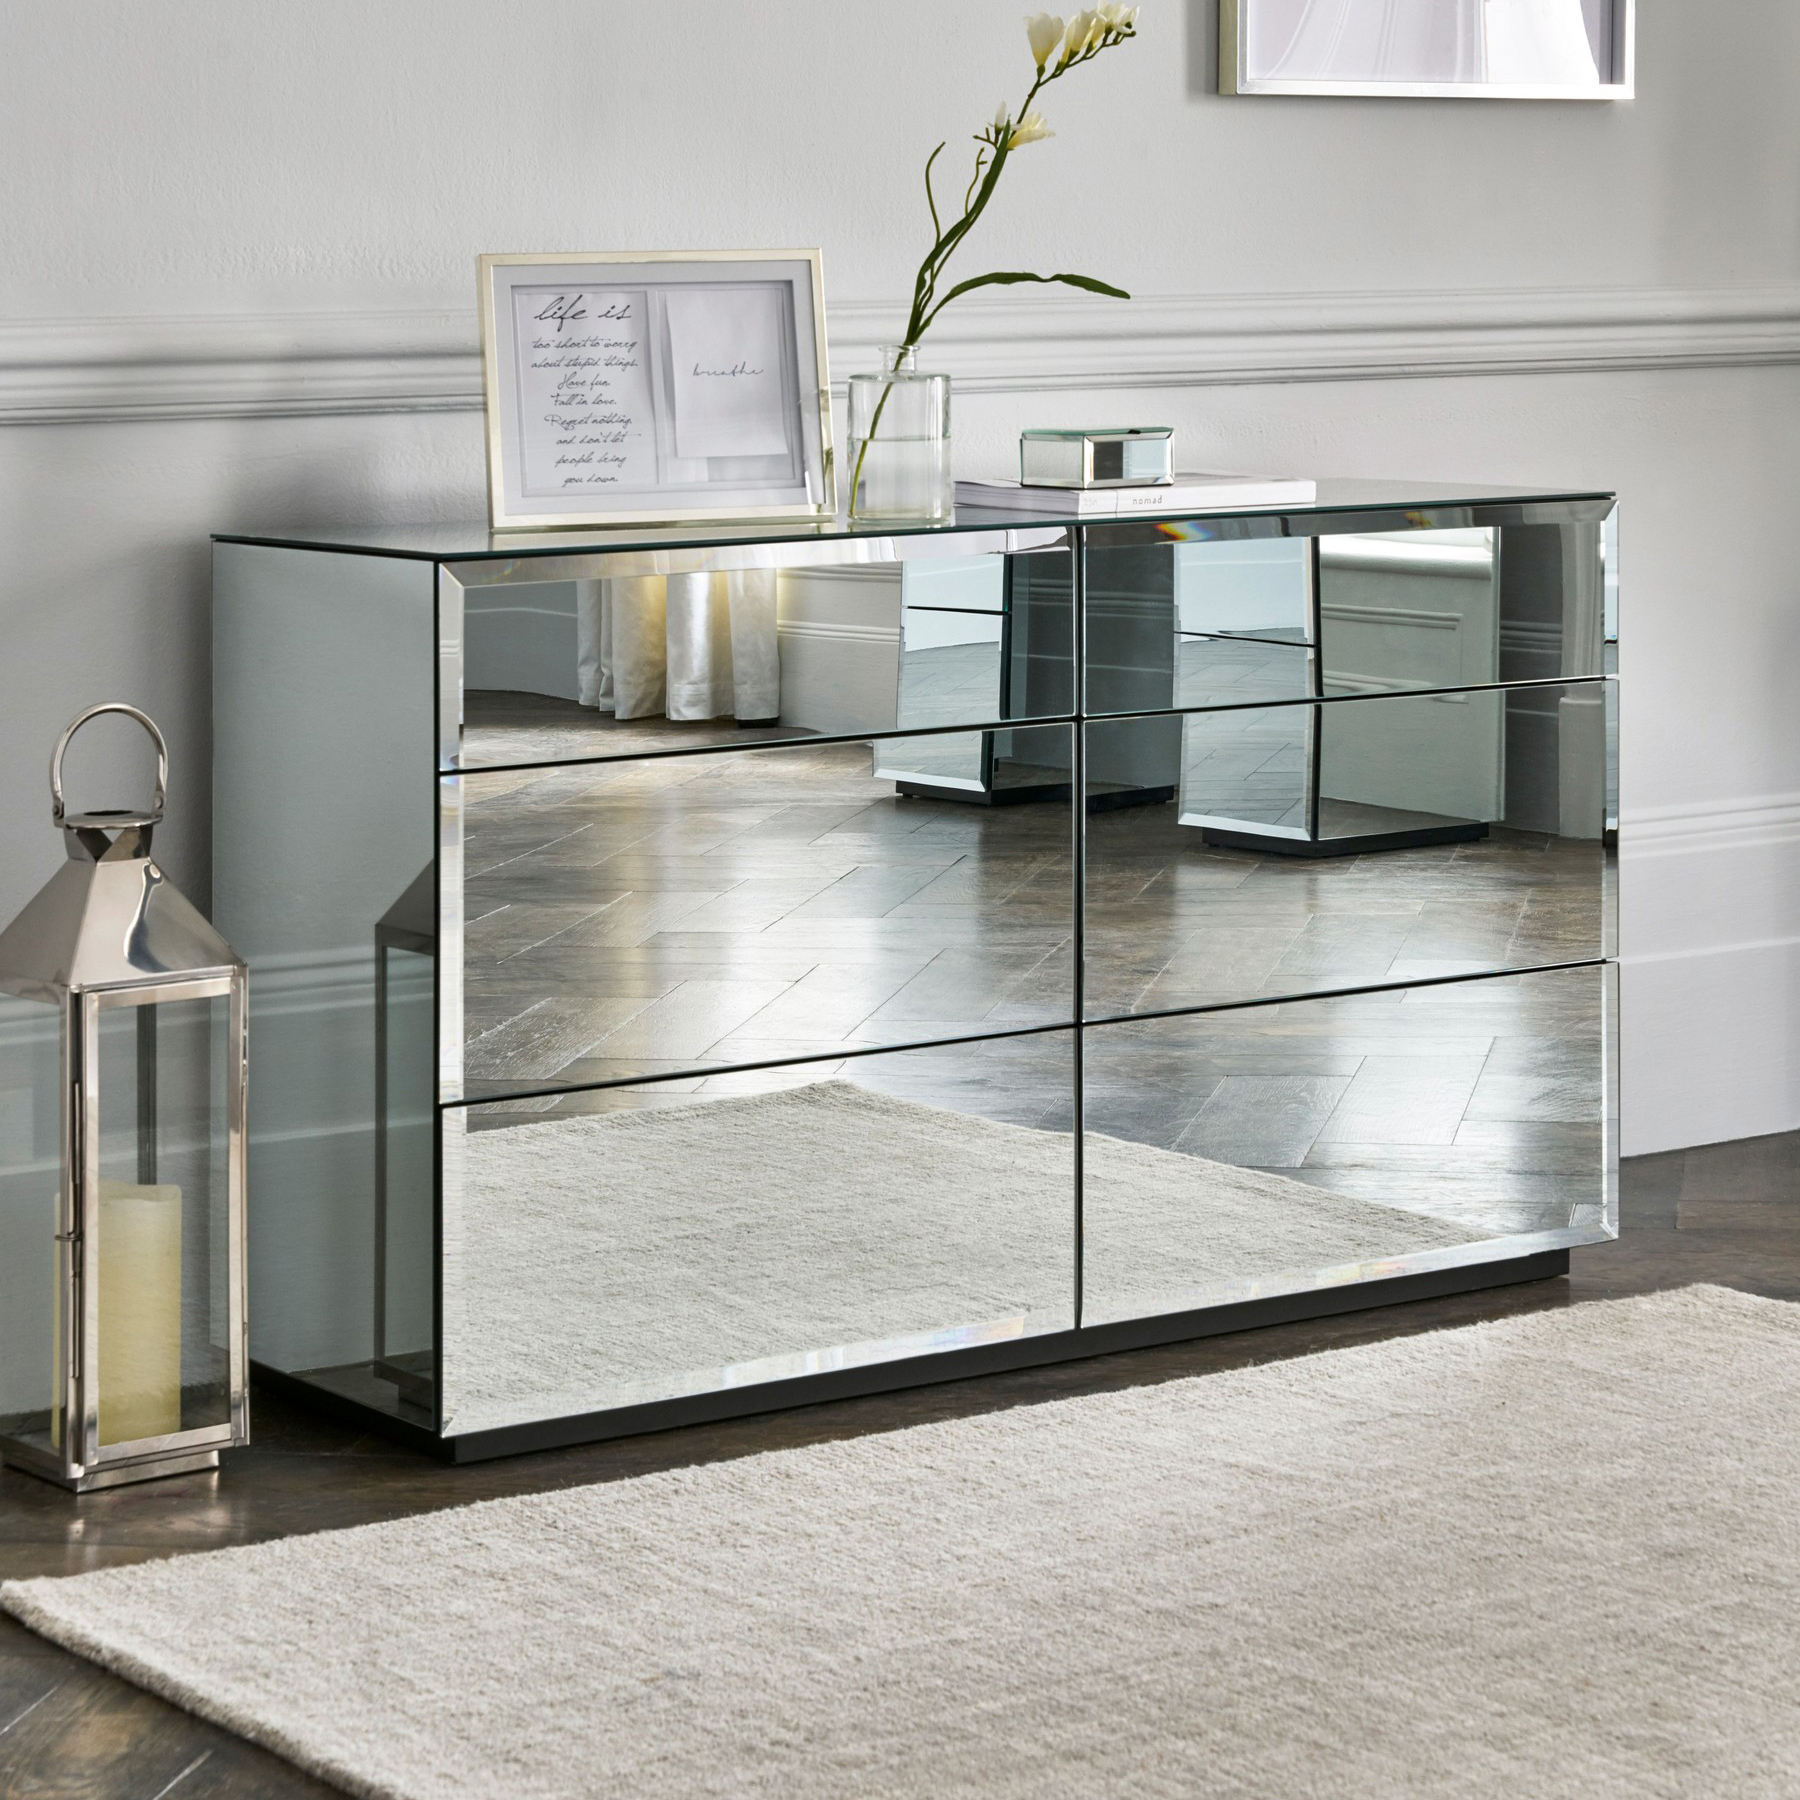 Silver glass mirrored chest of drawers mirrored furniture